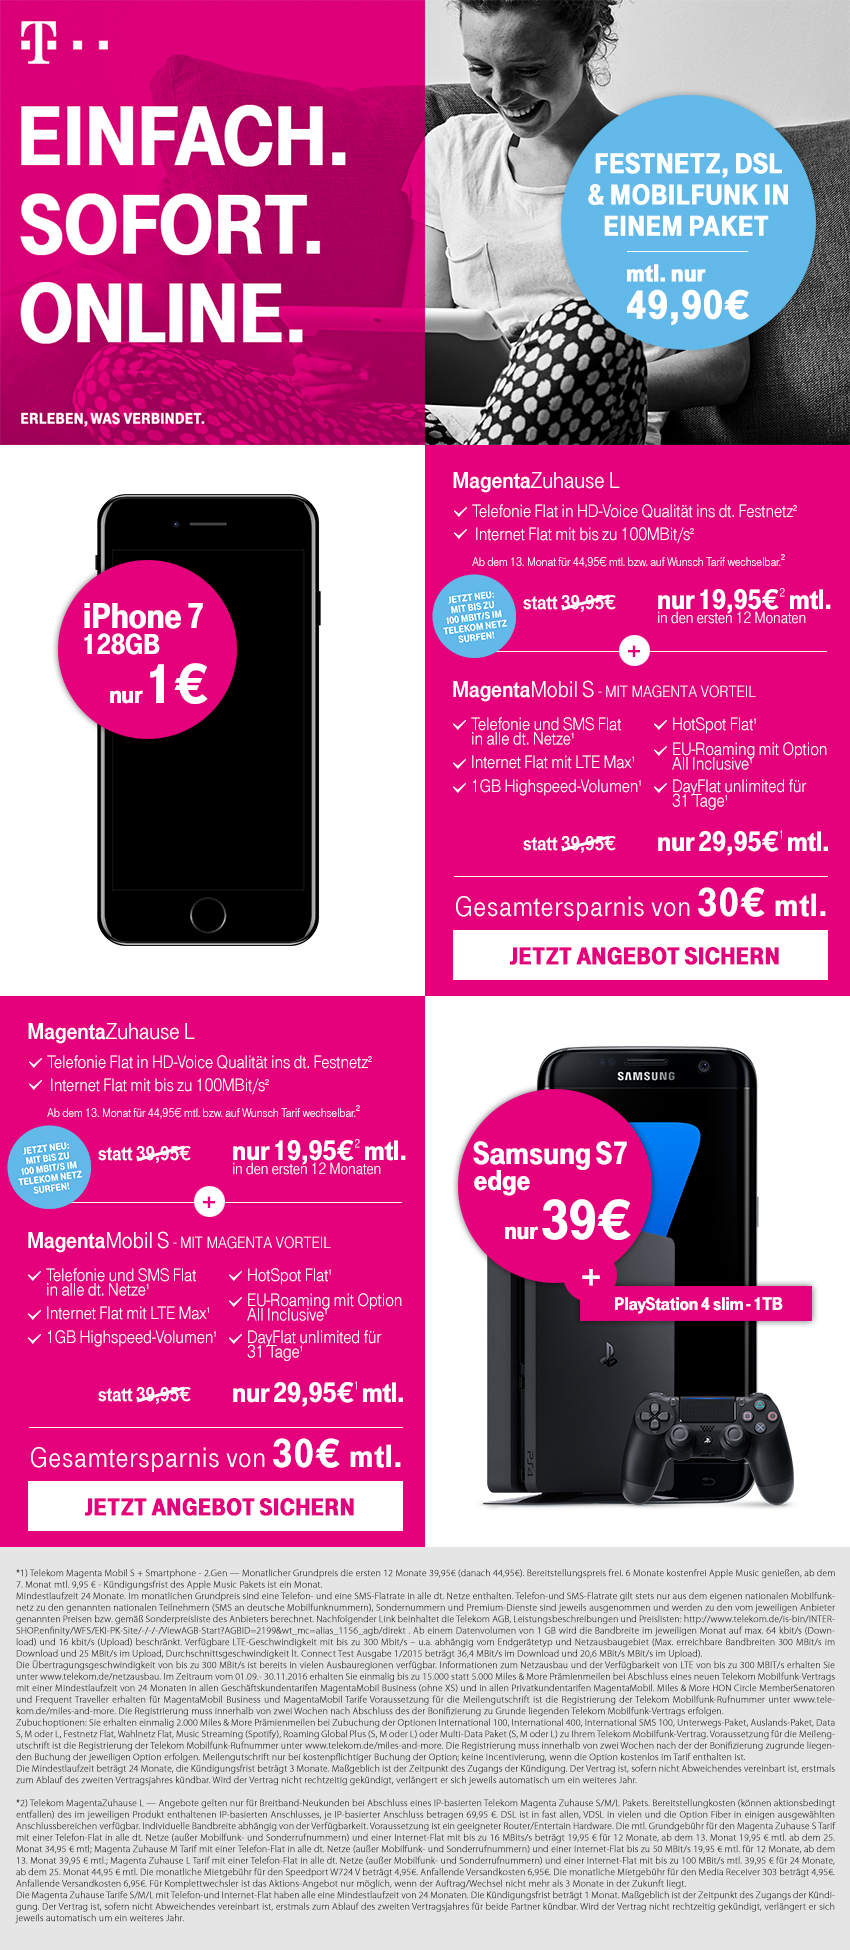 telekom magentazuhause l magentamobil s angebot. Black Bedroom Furniture Sets. Home Design Ideas